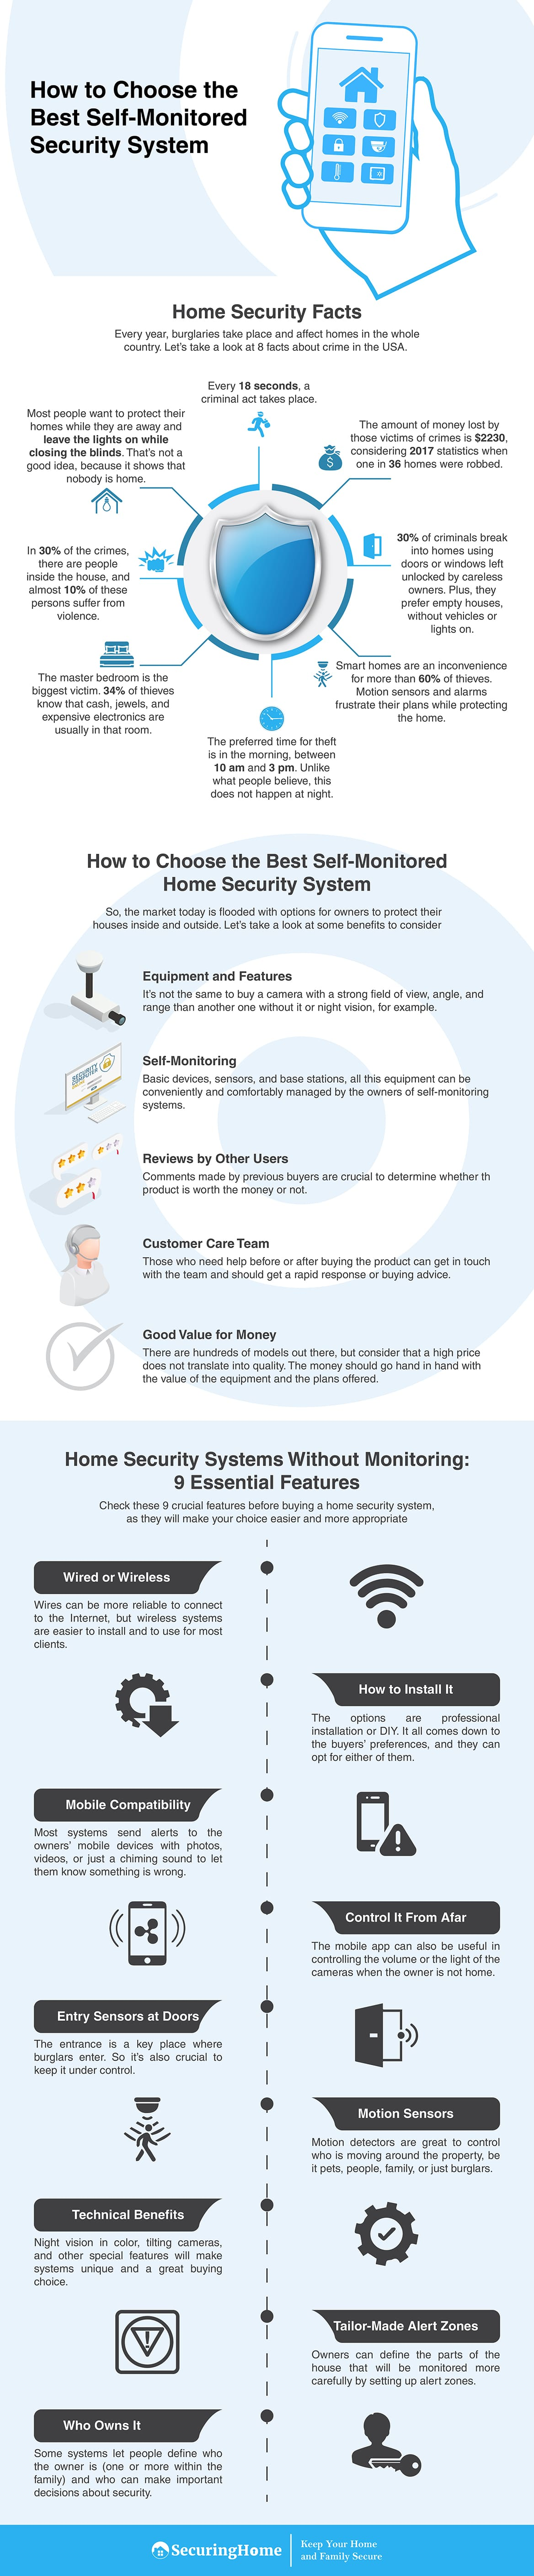 Home Security Systems Without Monitoring